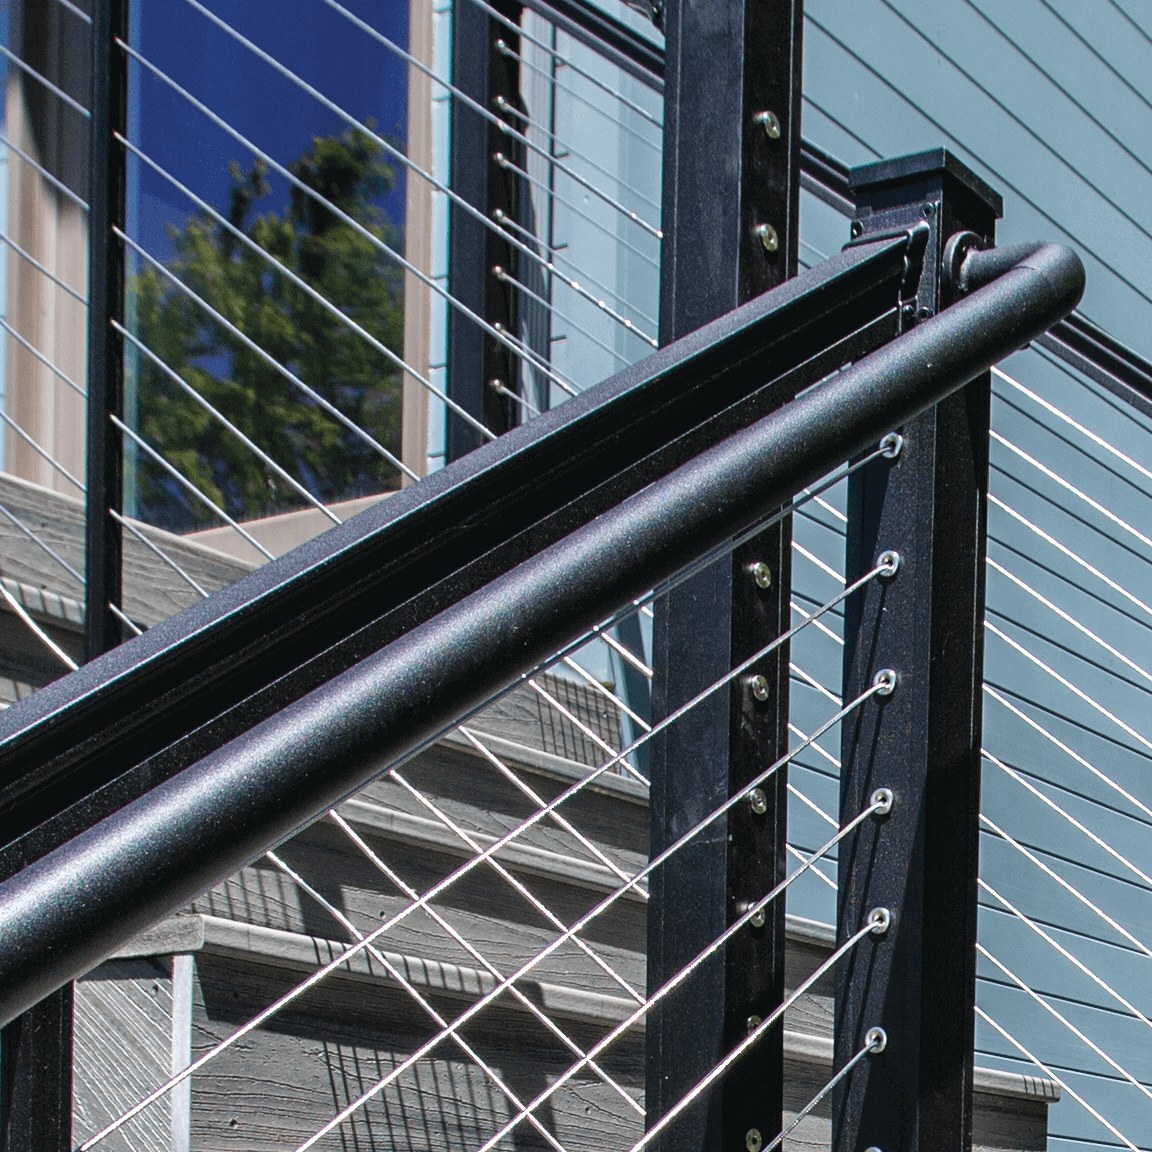 Key-Link Fencing & Railing - Aluminum Secondary Handrail